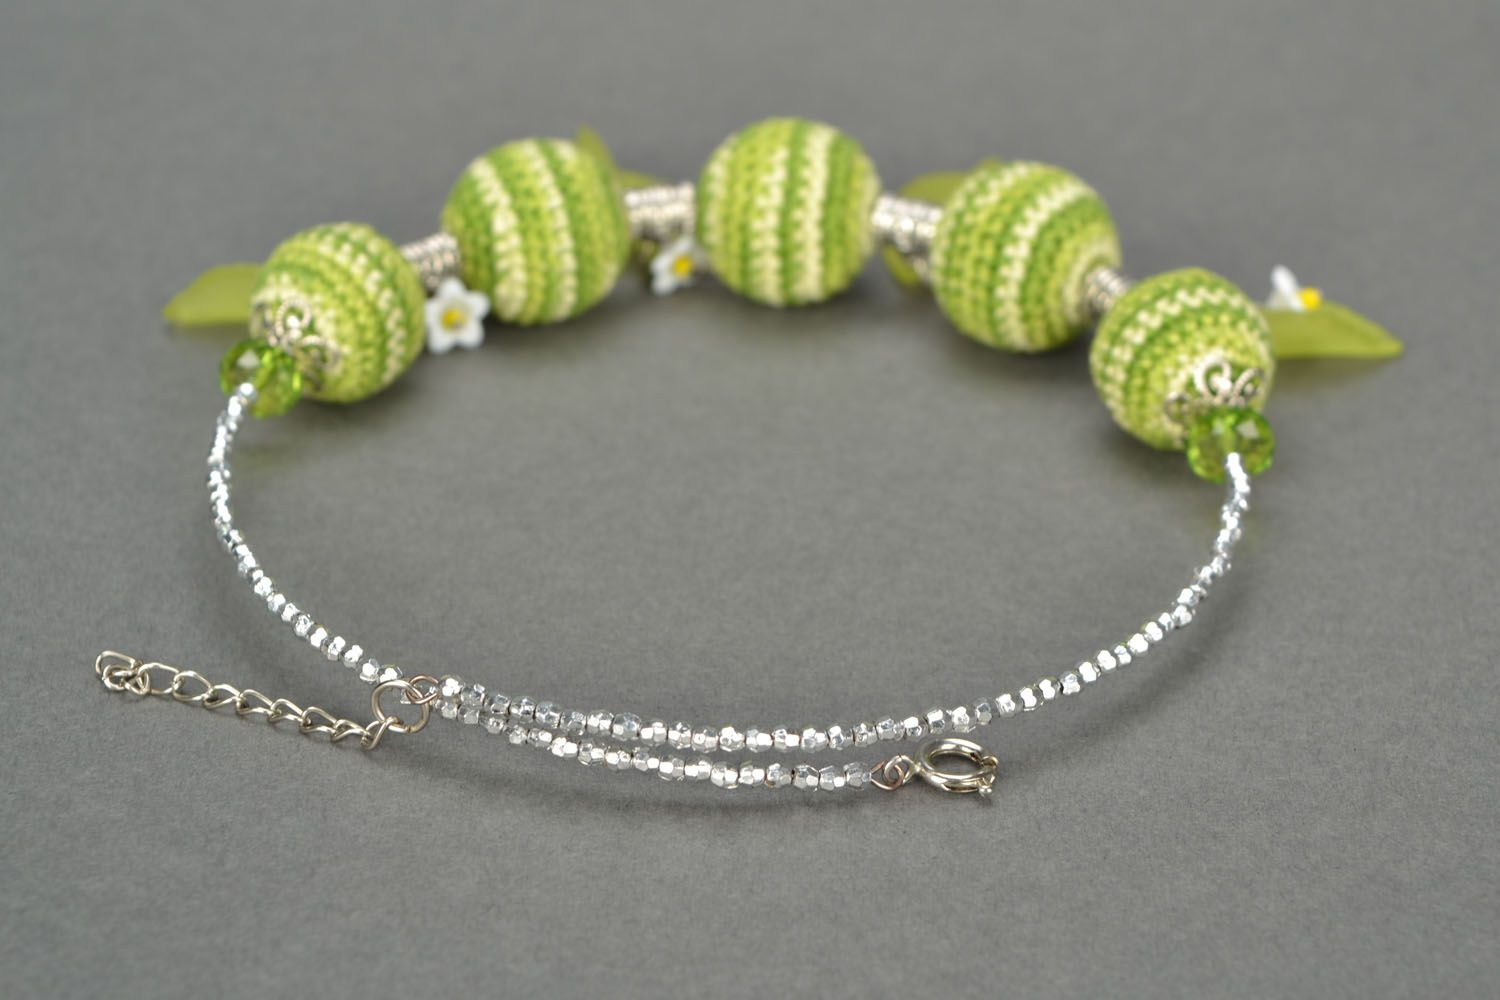 Necklace with crocheted round beads photo 4